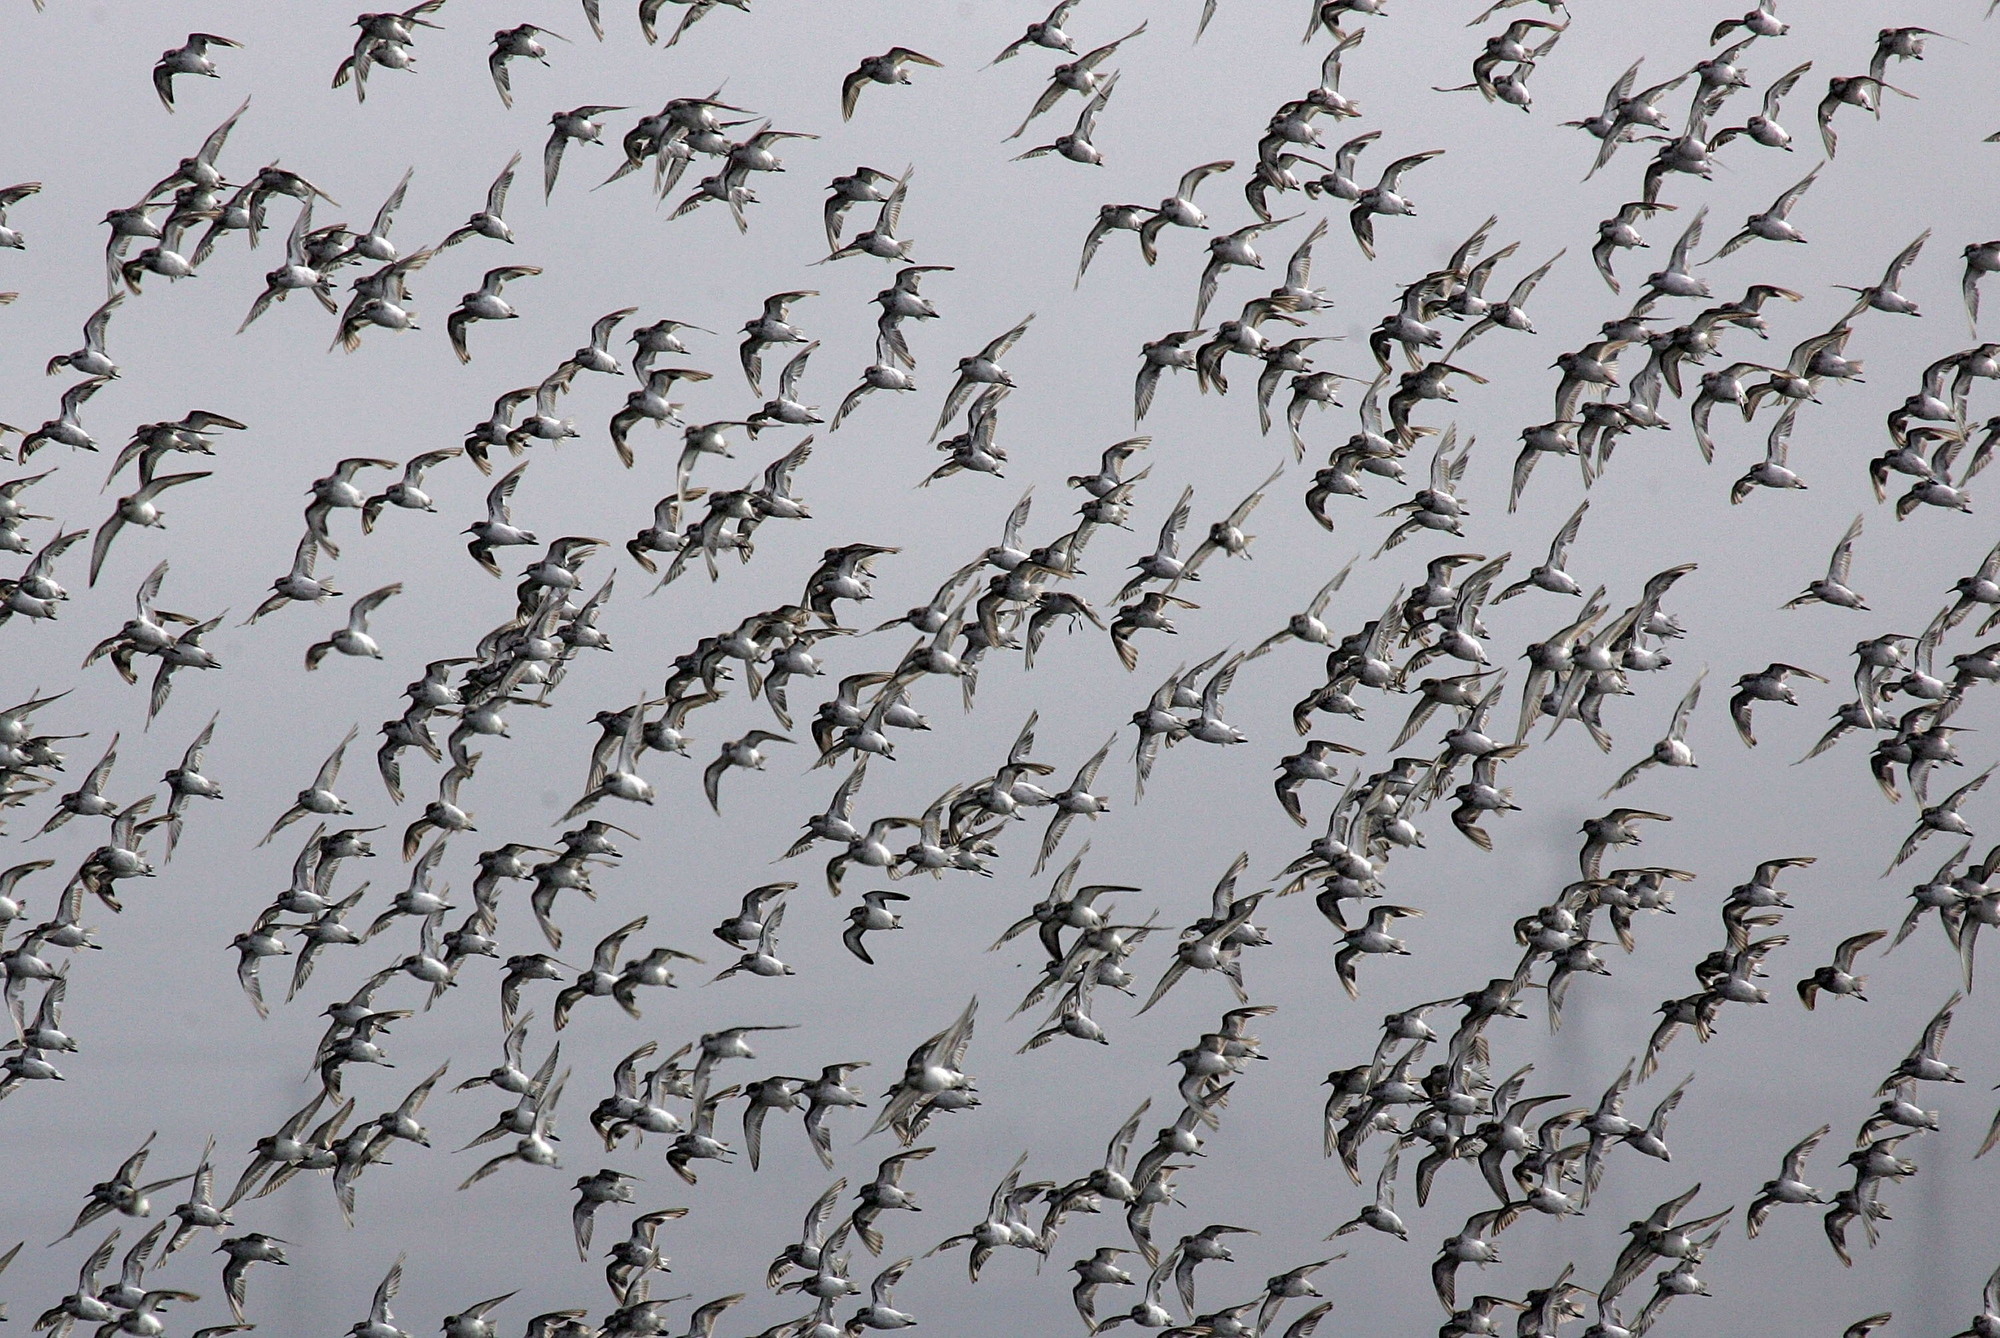 A flock of Western Sandpipers fly by at the Napa-Sonoma Marshes Wildlife Area in Sonoma, California.